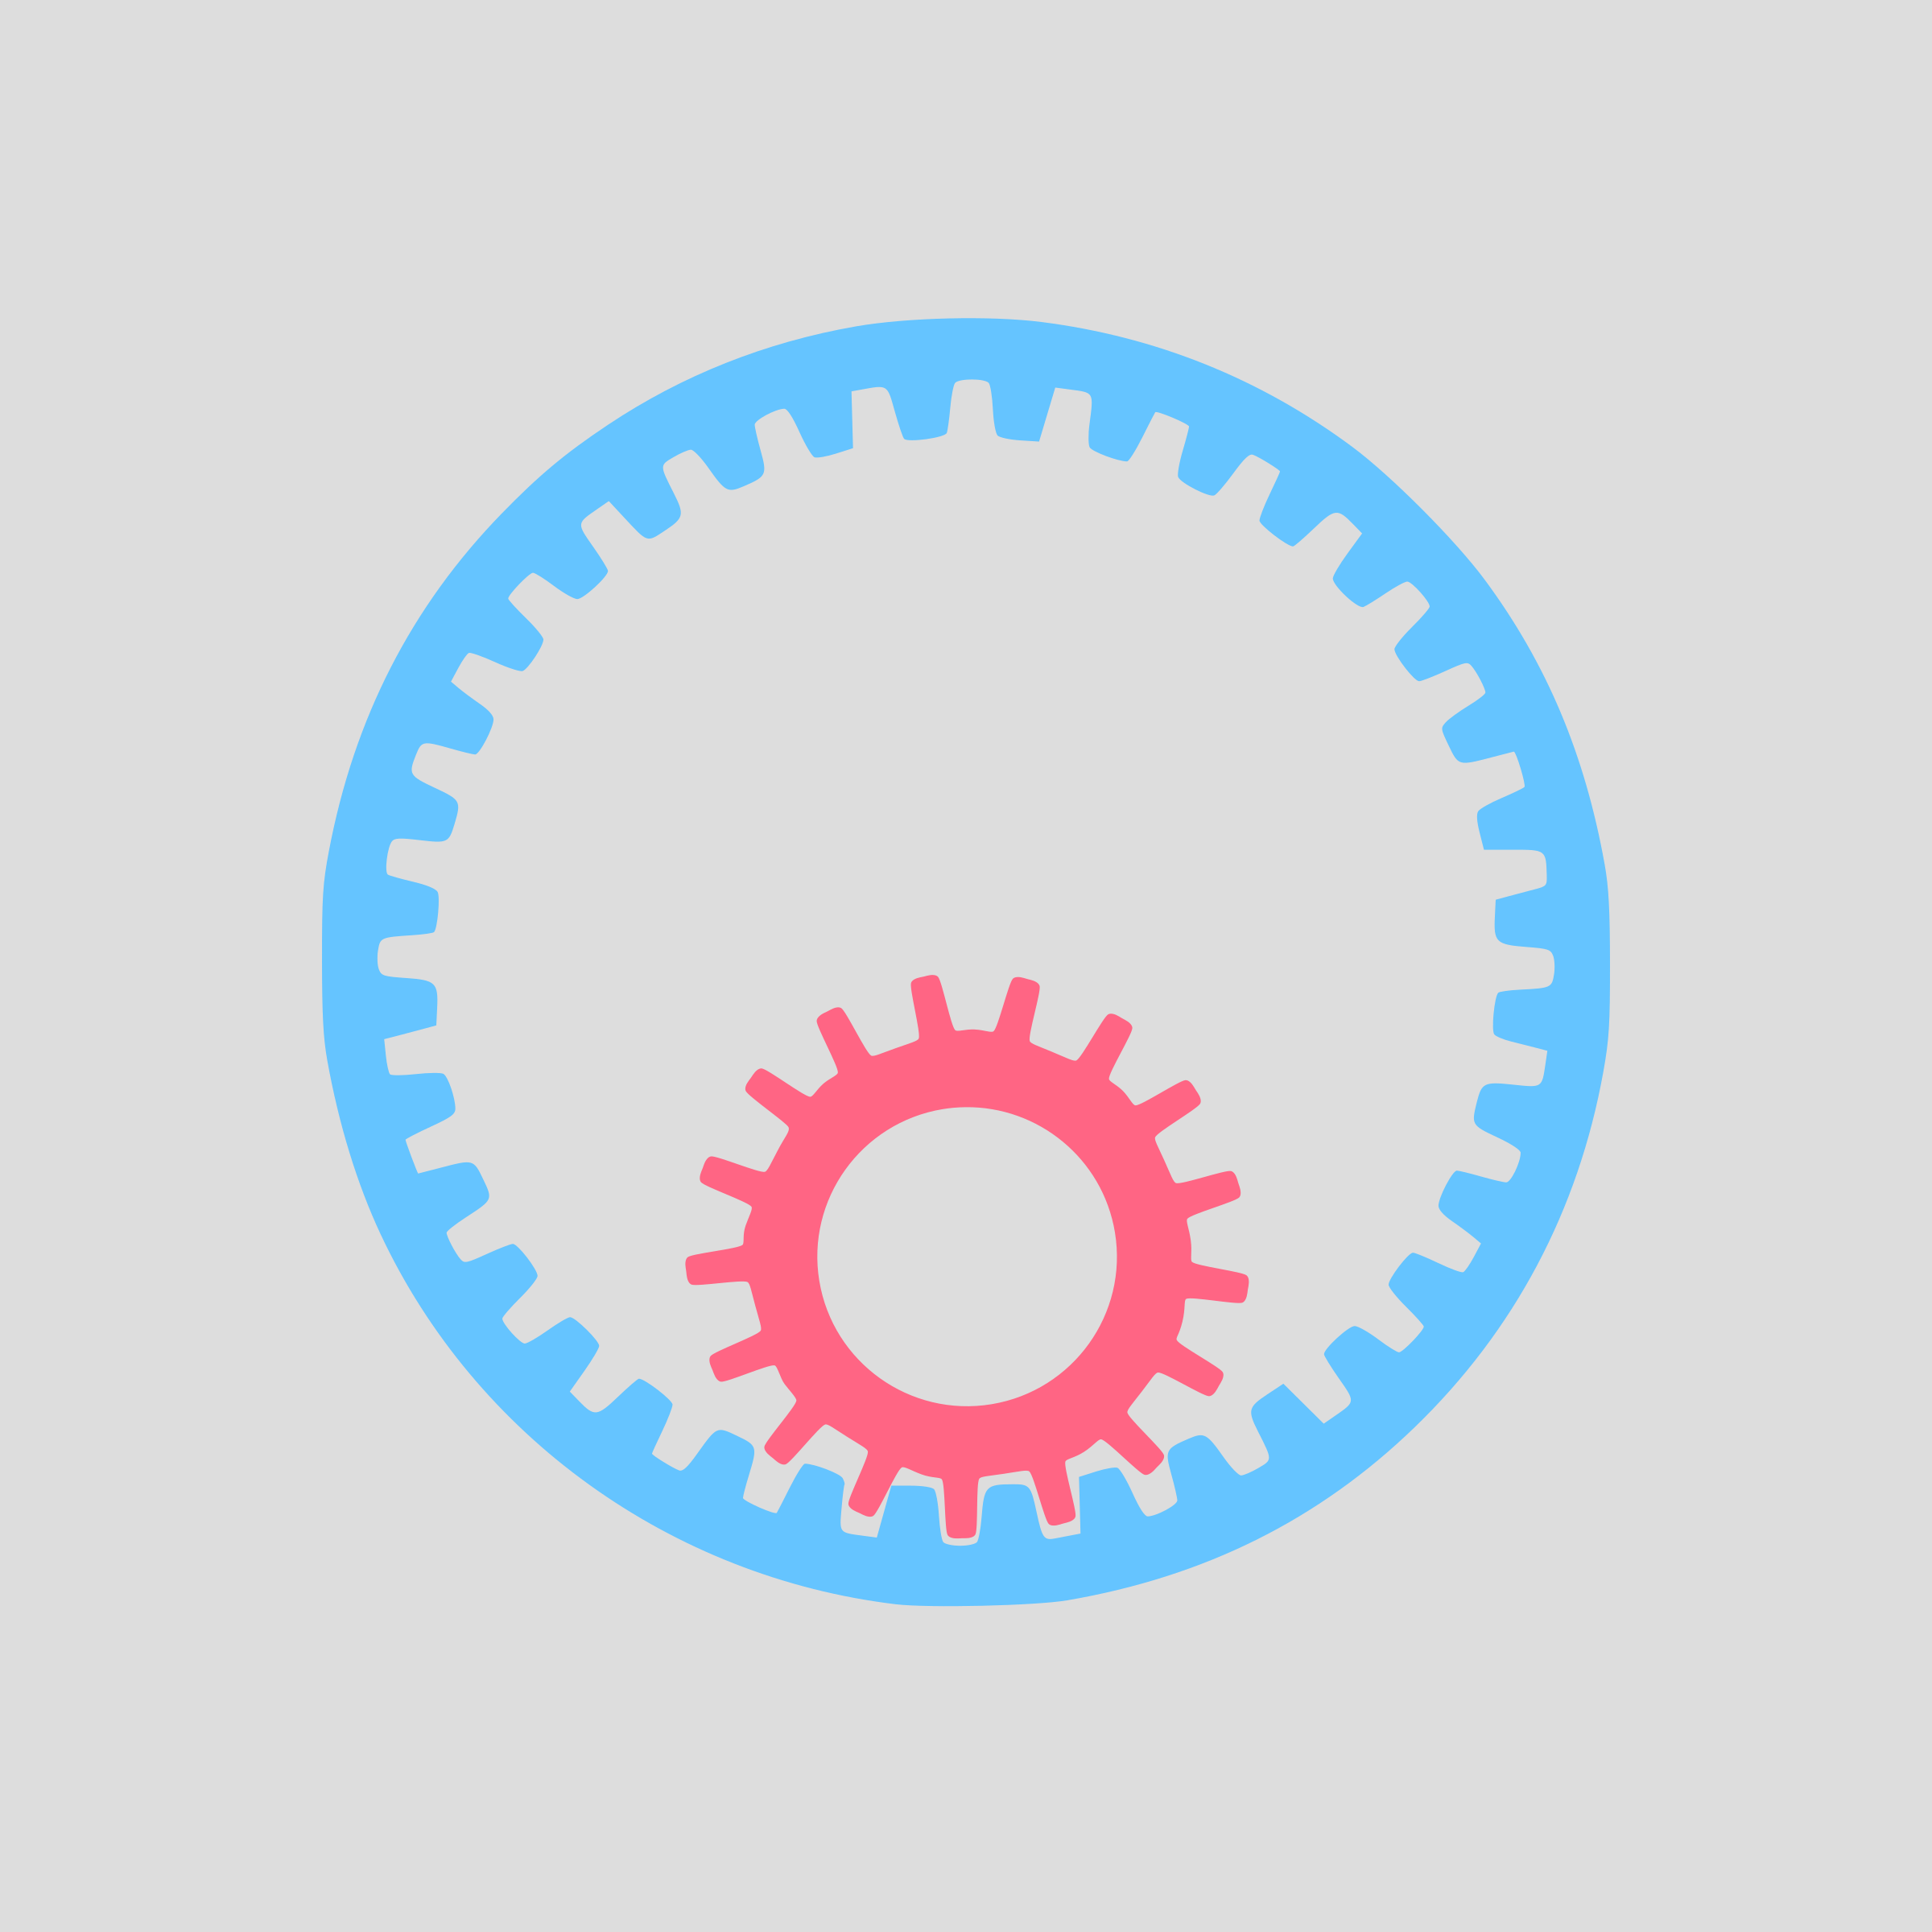 Transparent gear animated. Clipart animation big image